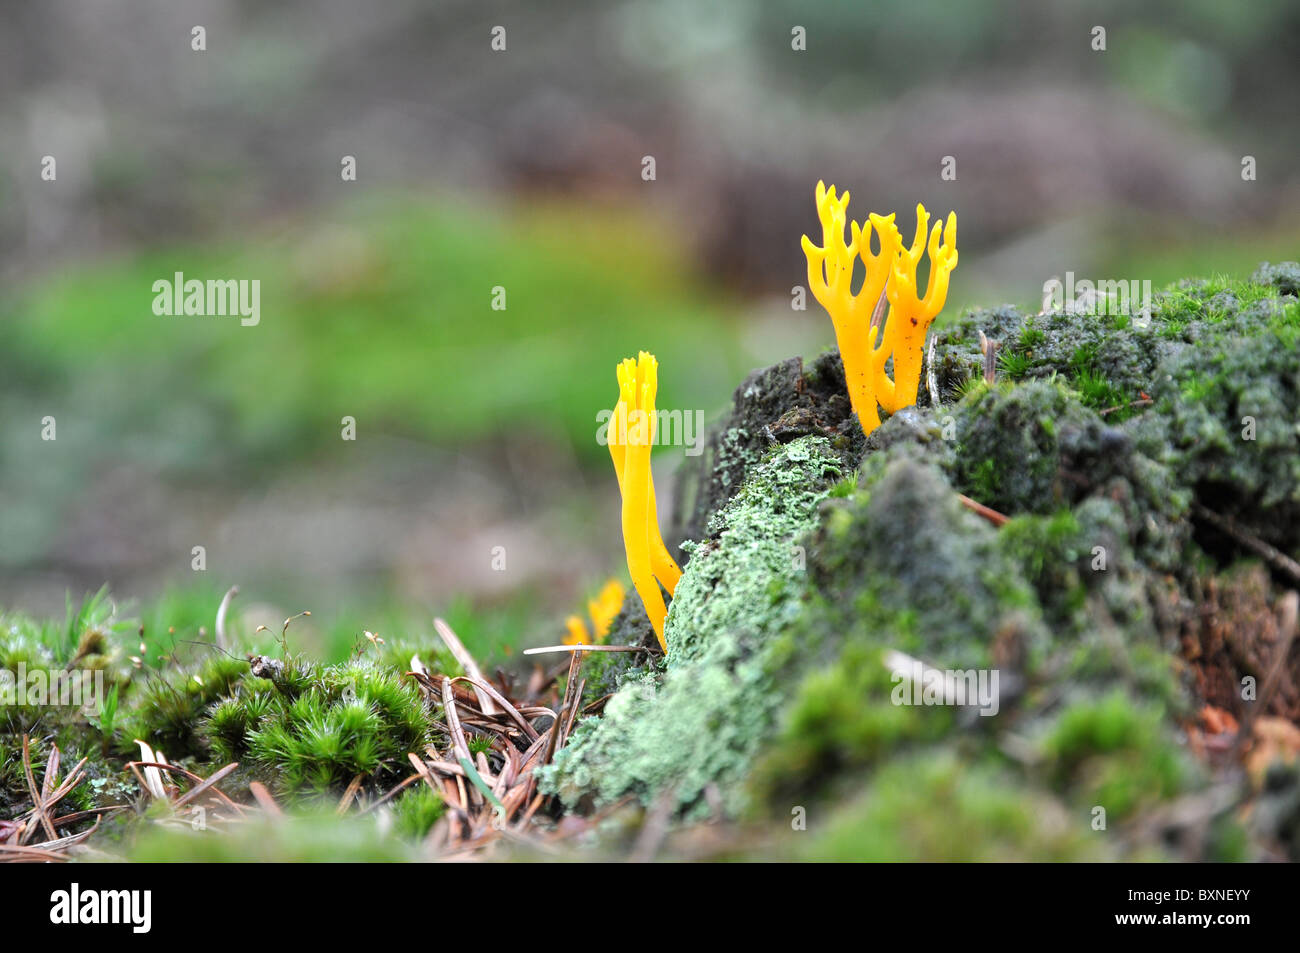 Yellow mushroom growing in an old rotten tree - Stock Image